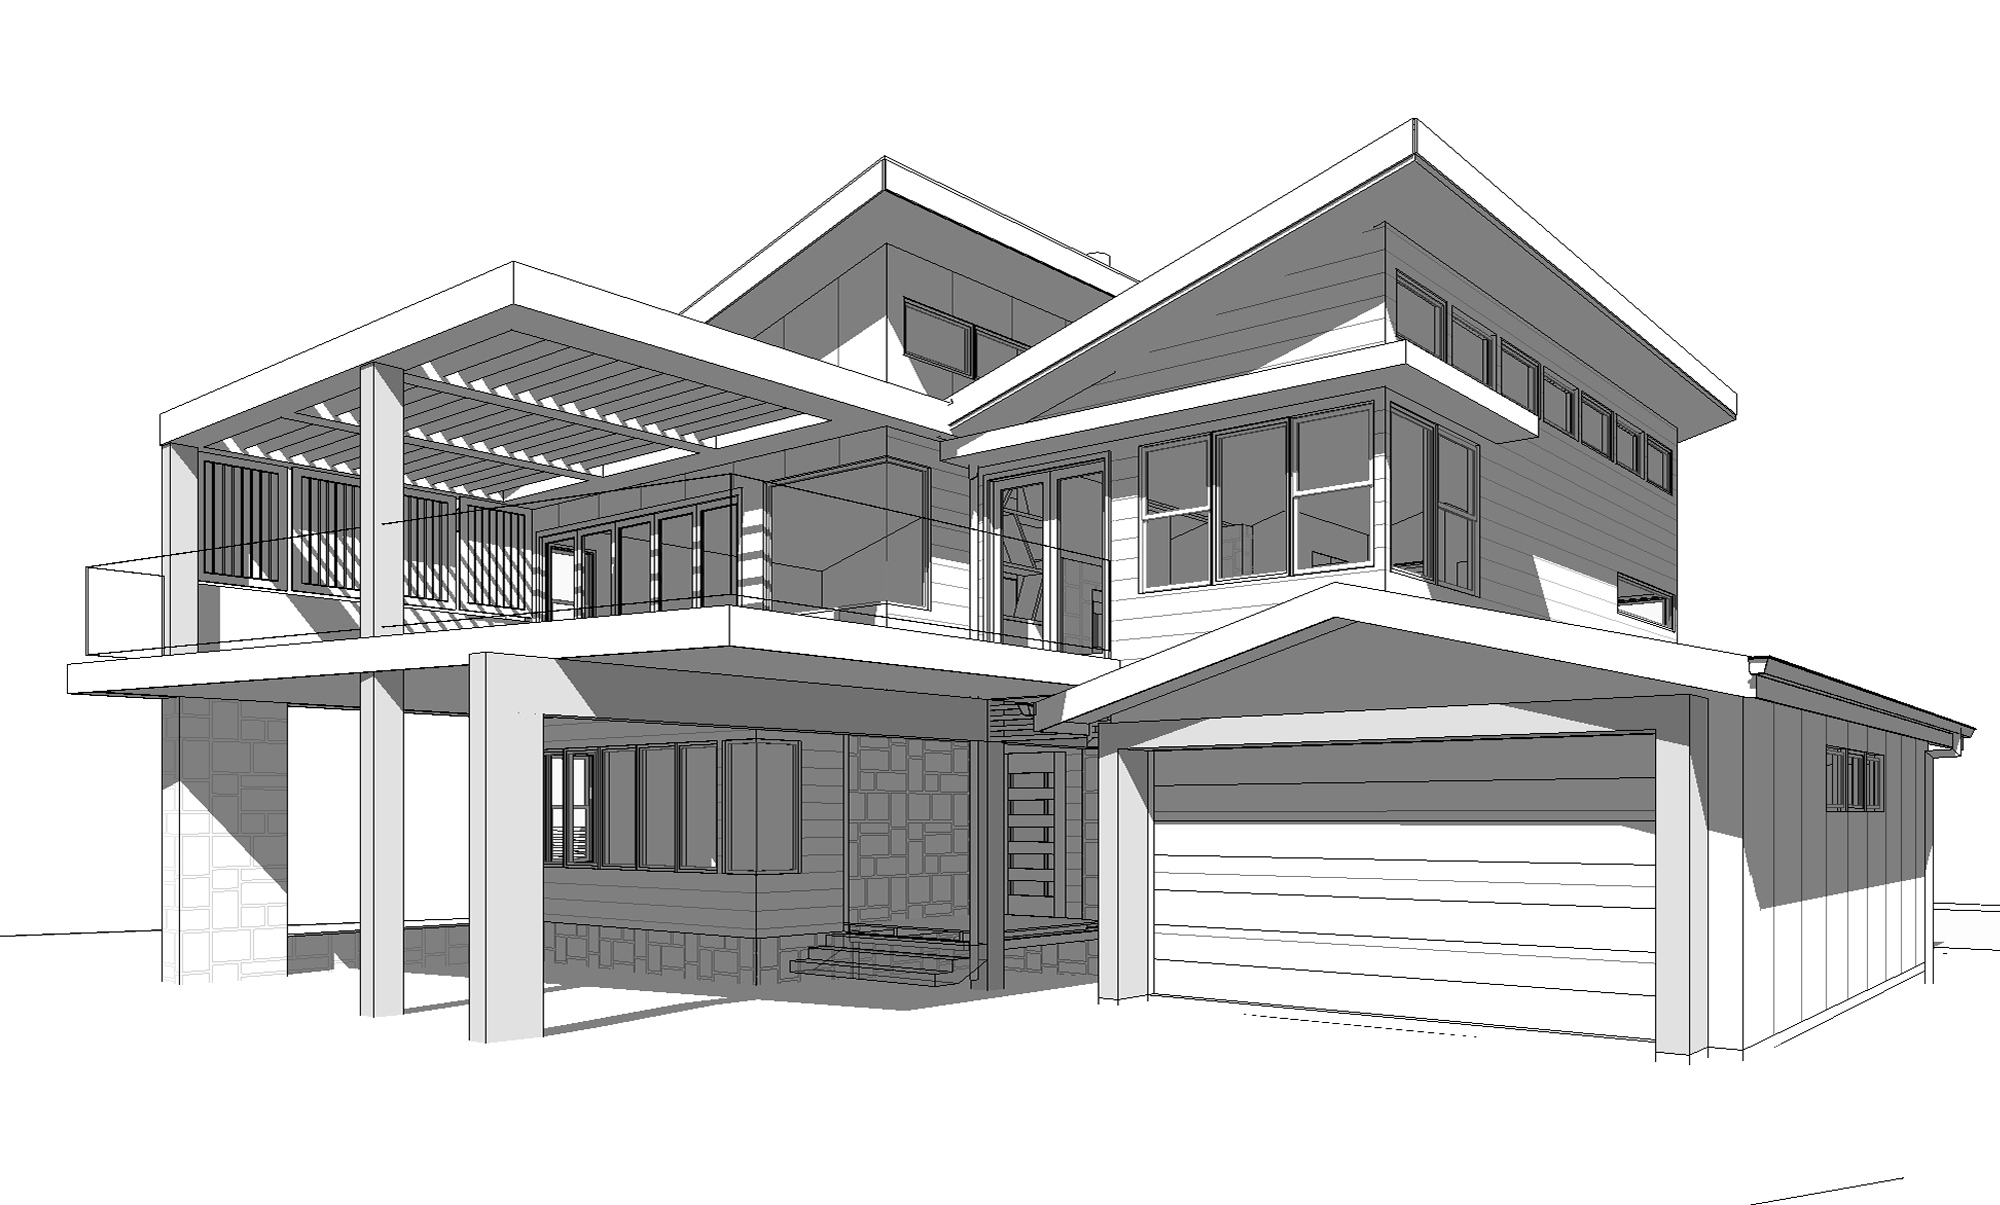 Architecture design drawing building architectural drawing for Architecture design for home plans